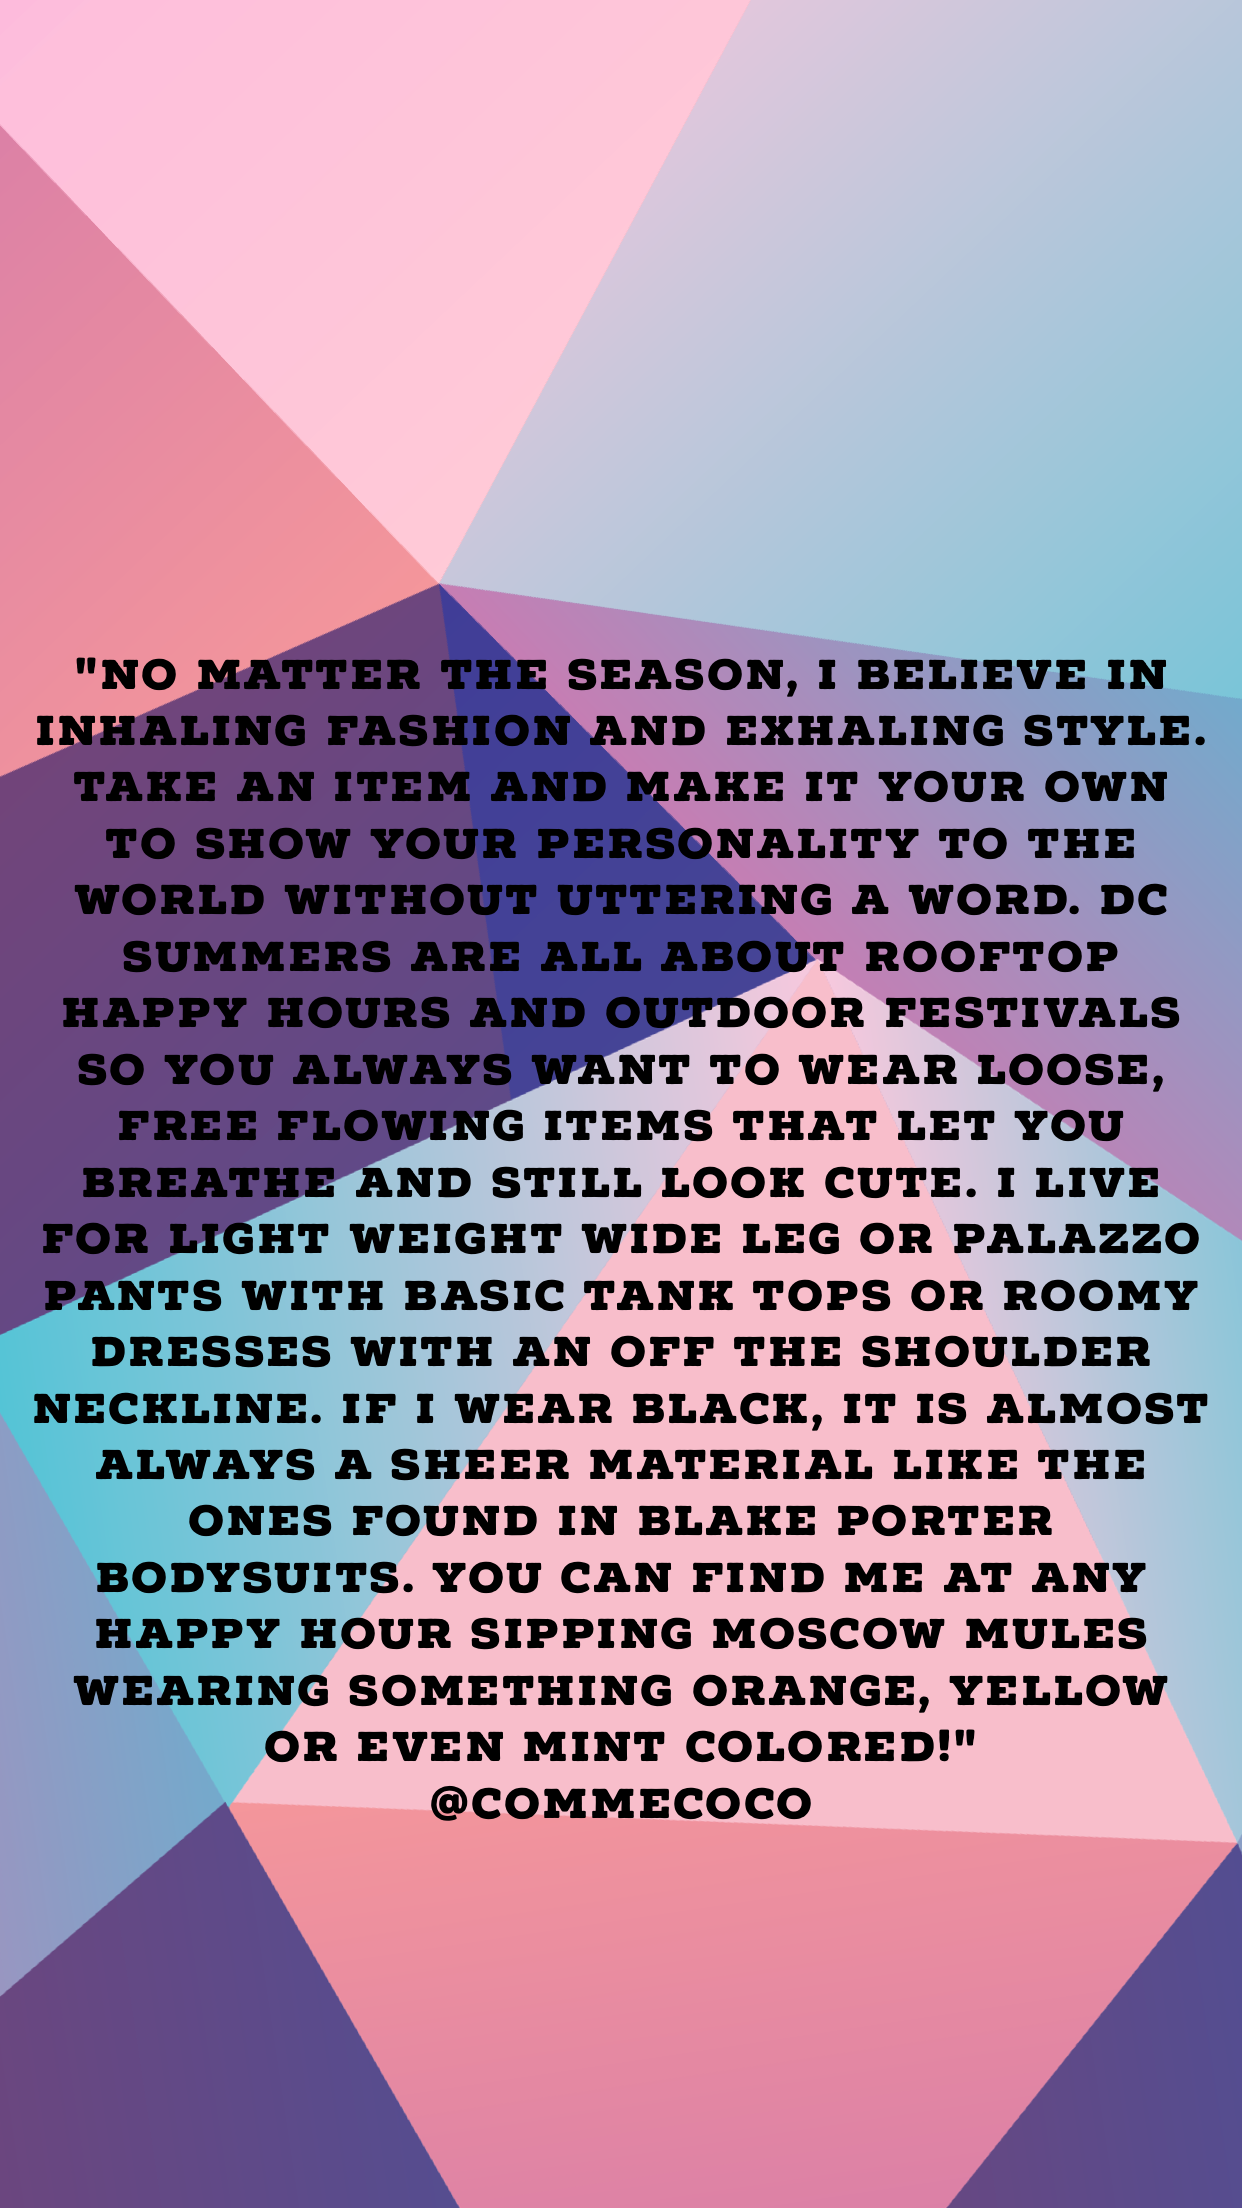 """No matter the season, I believe in inhaling fashion and exhaling style. Take an item and make it your own to show your personality to the world without uttering a word. D.C. summers are all about rooftop happy hours and outdoor festivals so you always want to wear loose, free flowing items that let you breathe and still look cute. I live for light weight wide leg or palazzo pants with basic tank tops or roomy dresses with an off the shoulder neckline. Stay away from stiff and heavy fabrics. Fluid movement is the key! If I wear black, it is almost always a sheer material like the ones found in Blake Porter bodysuits. Summer is the time to wear every and any color of the rainbow and experiment with color blocking. You can find me at any happy hour sipping Moscow Mules wearing something orange, yellow or even mint colored! Oh and hats. Hats are key for blocking out the sun and giving instant chic even in the most basic of ensembles."""